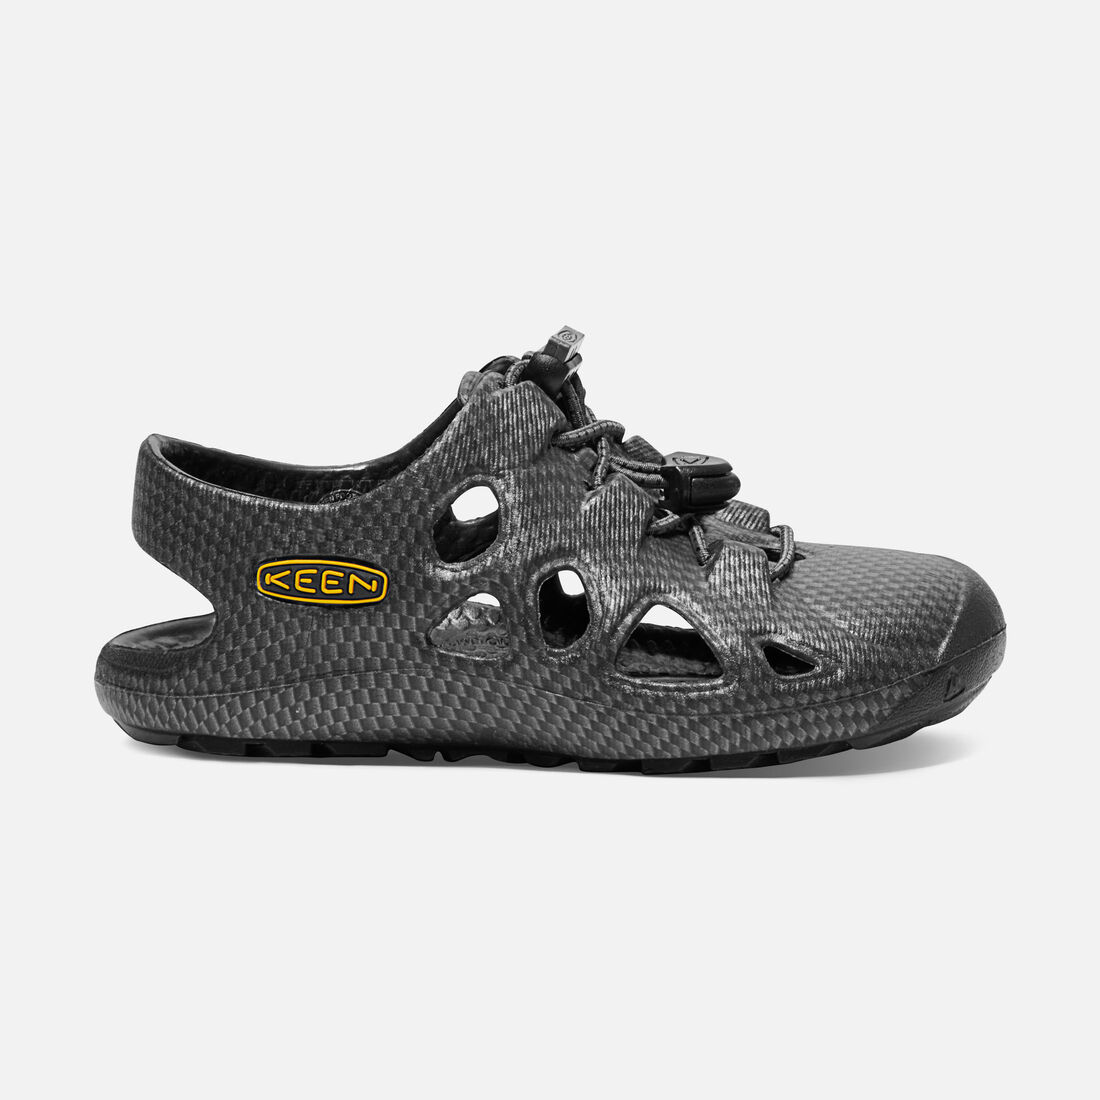 24a5f3bcddde Toddlers  Rio in GRAPHITE - large view.